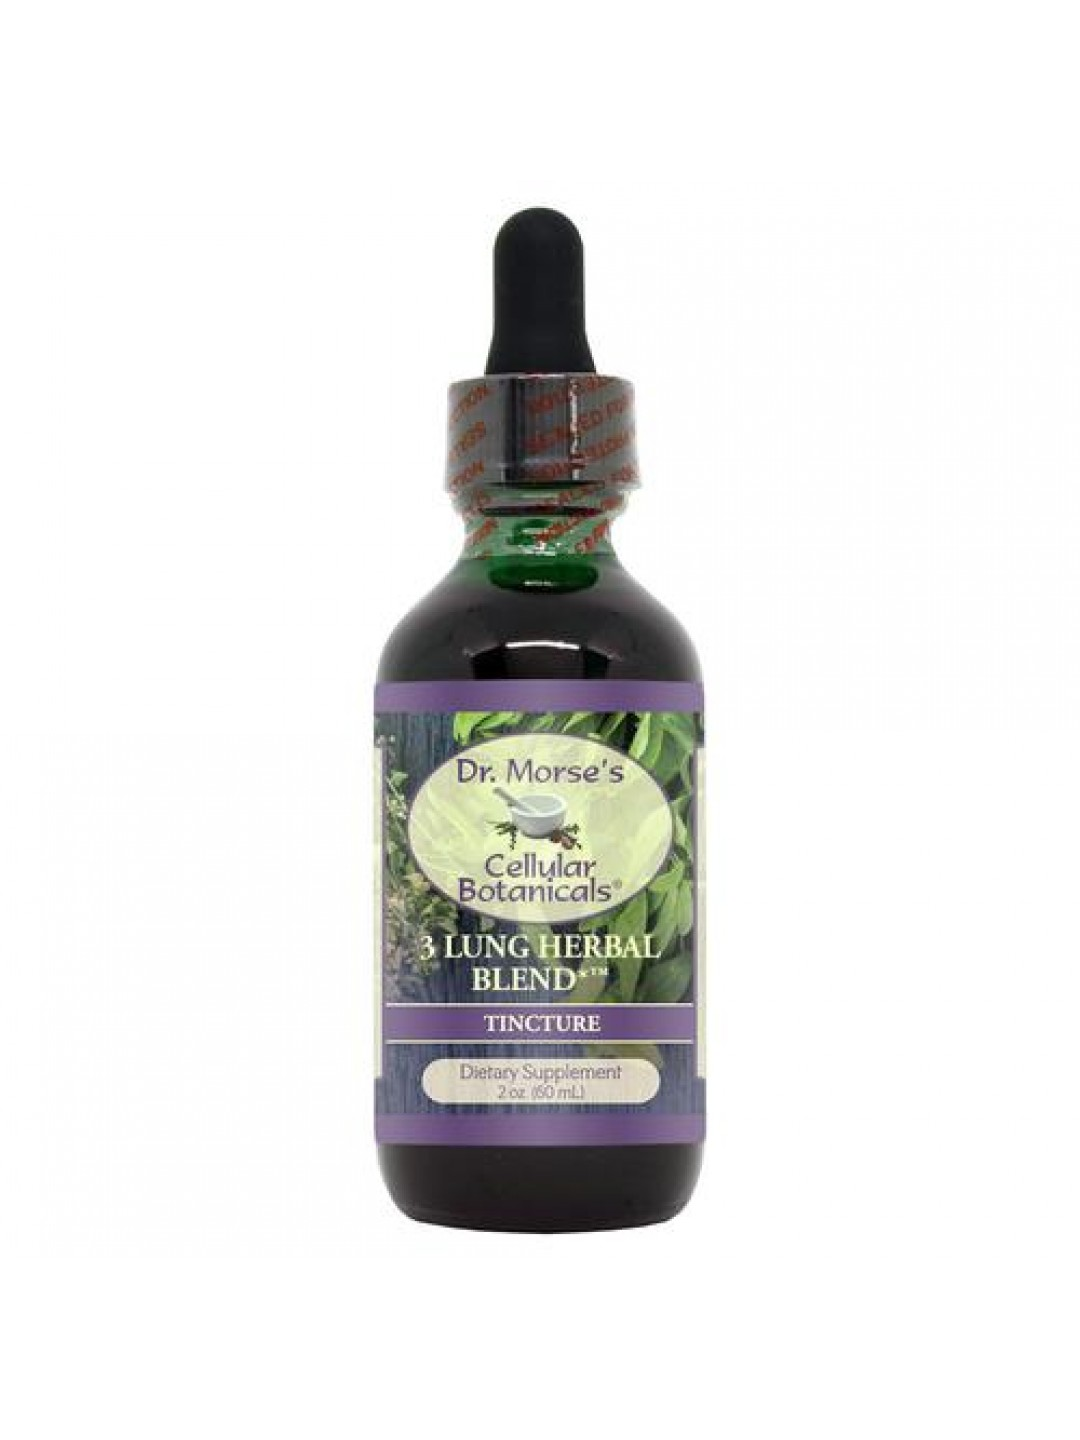 3 Lung Herbal Blend (2oz Tincture)